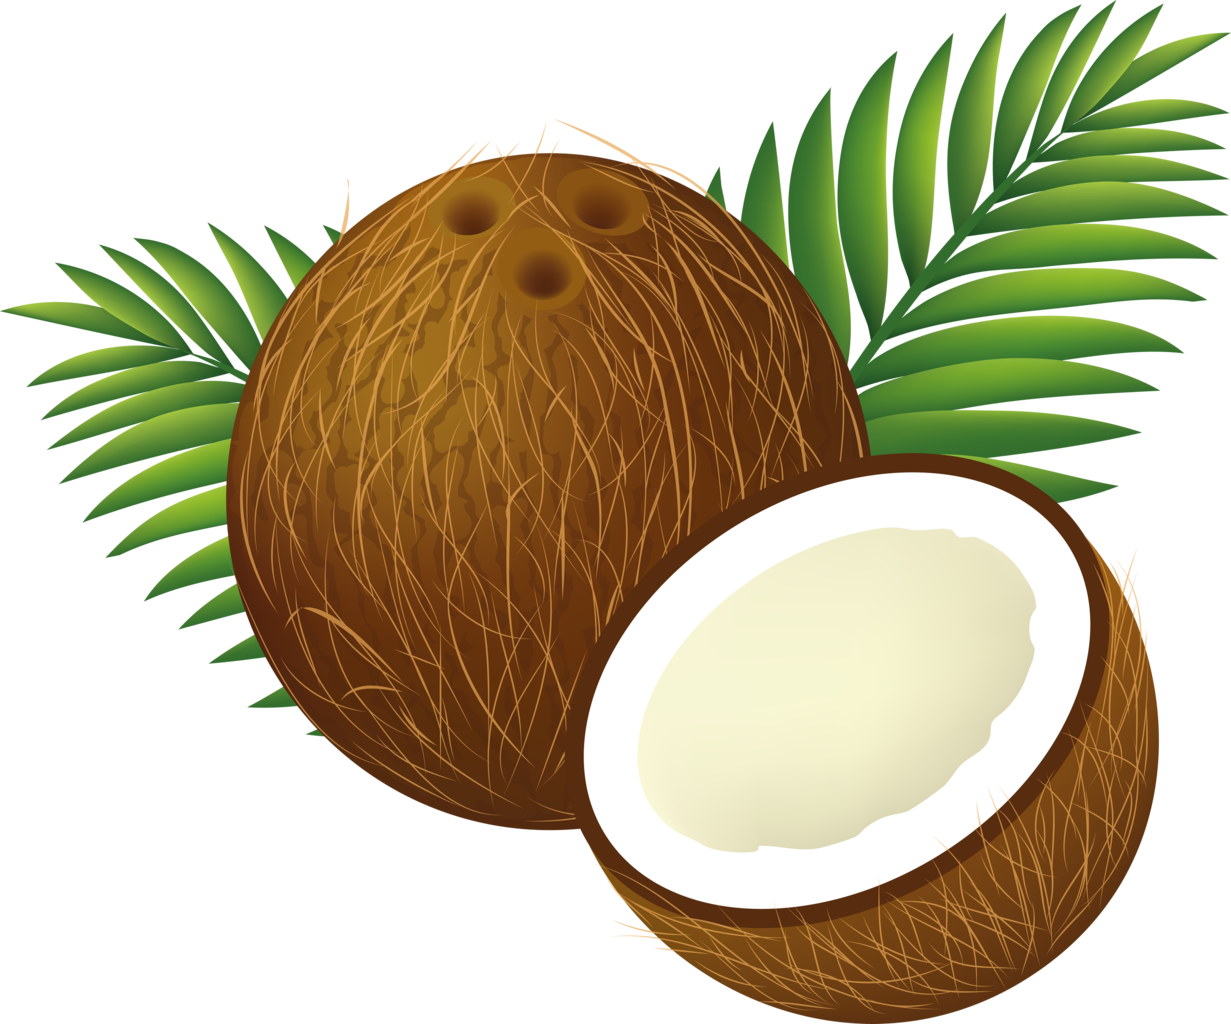 Coconut png images. File clipart cartoon wikimedia